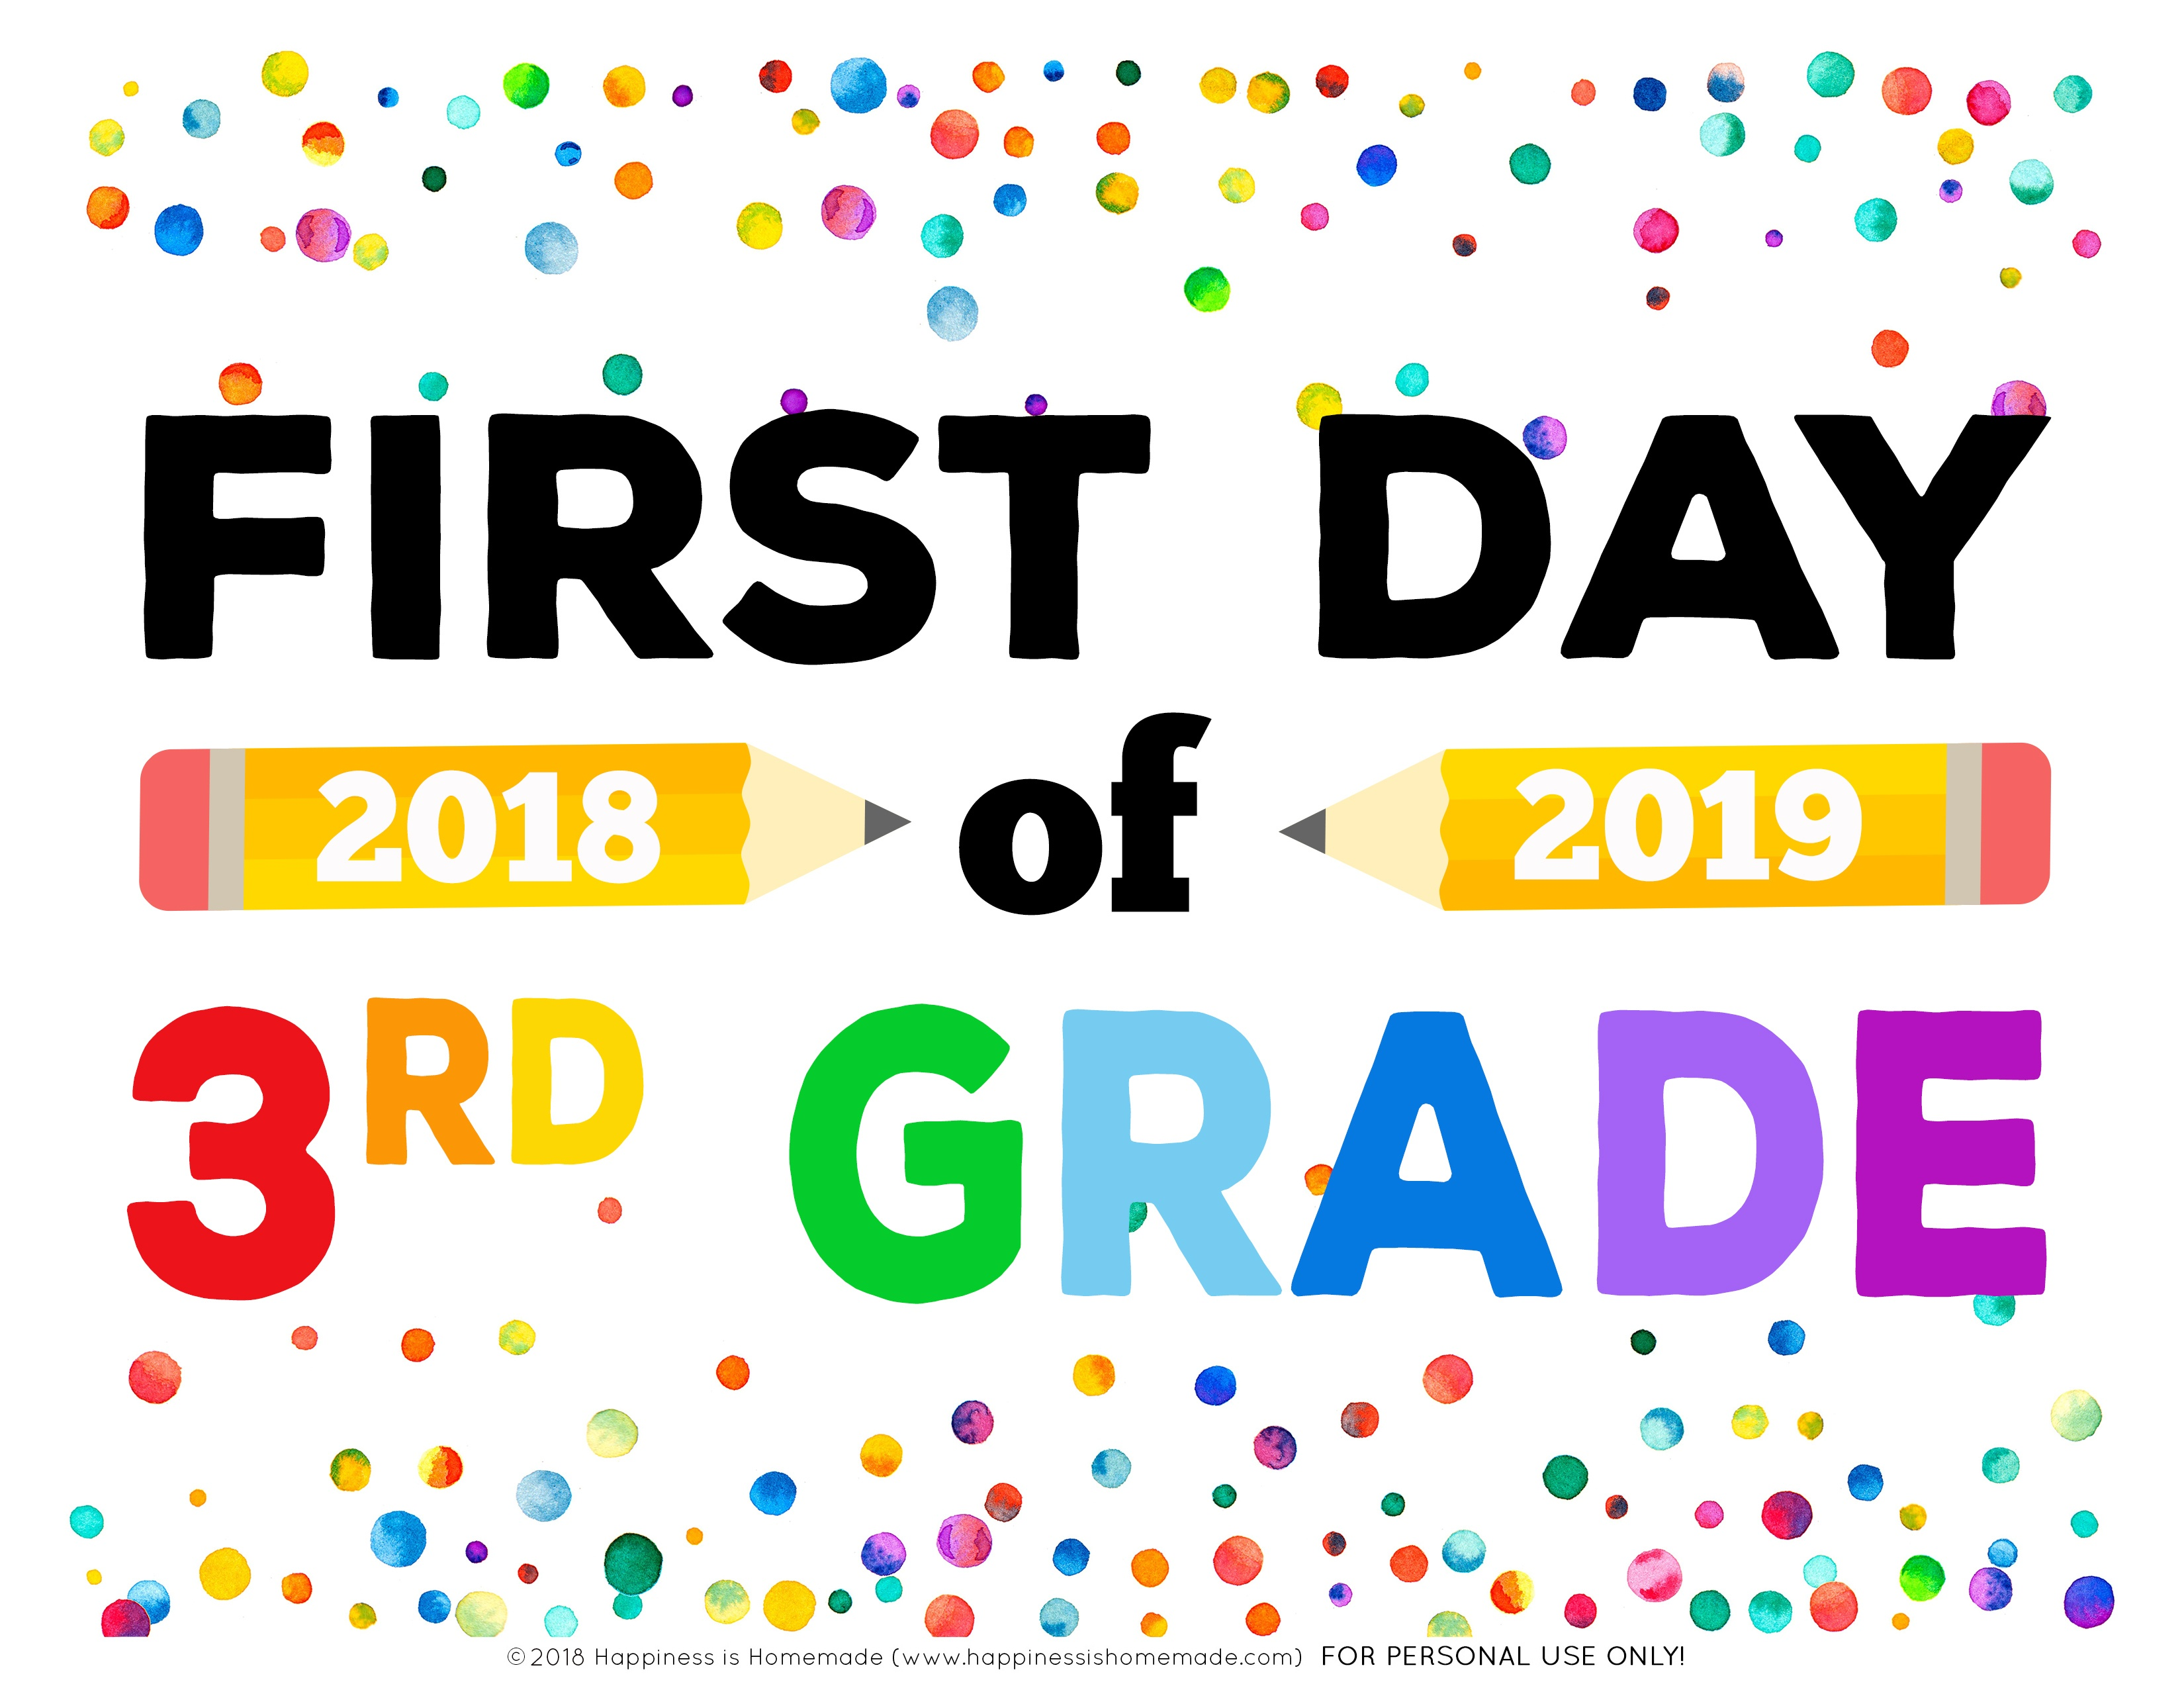 First Day Of School Signs - Free Printables - Happiness Is Homemade - First Day Of 3Rd Grade Free Printable